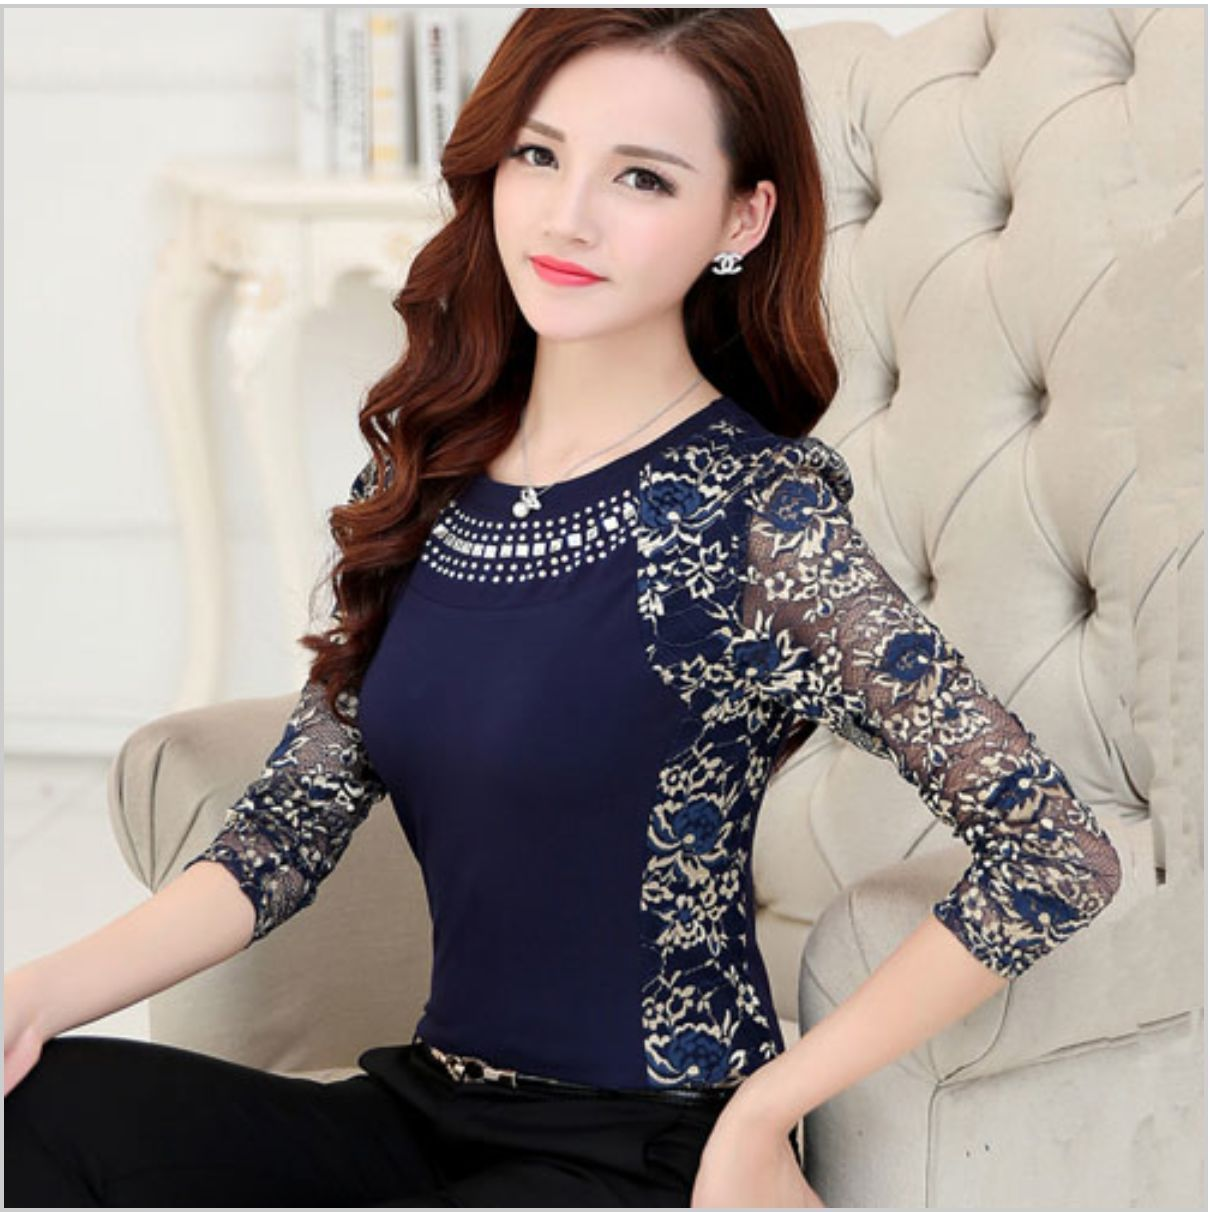 96533f5e23b Fancy Lace Top Blouse Long Sleeve Crystal Mesh Sheer Work Evening Elegant  Classy